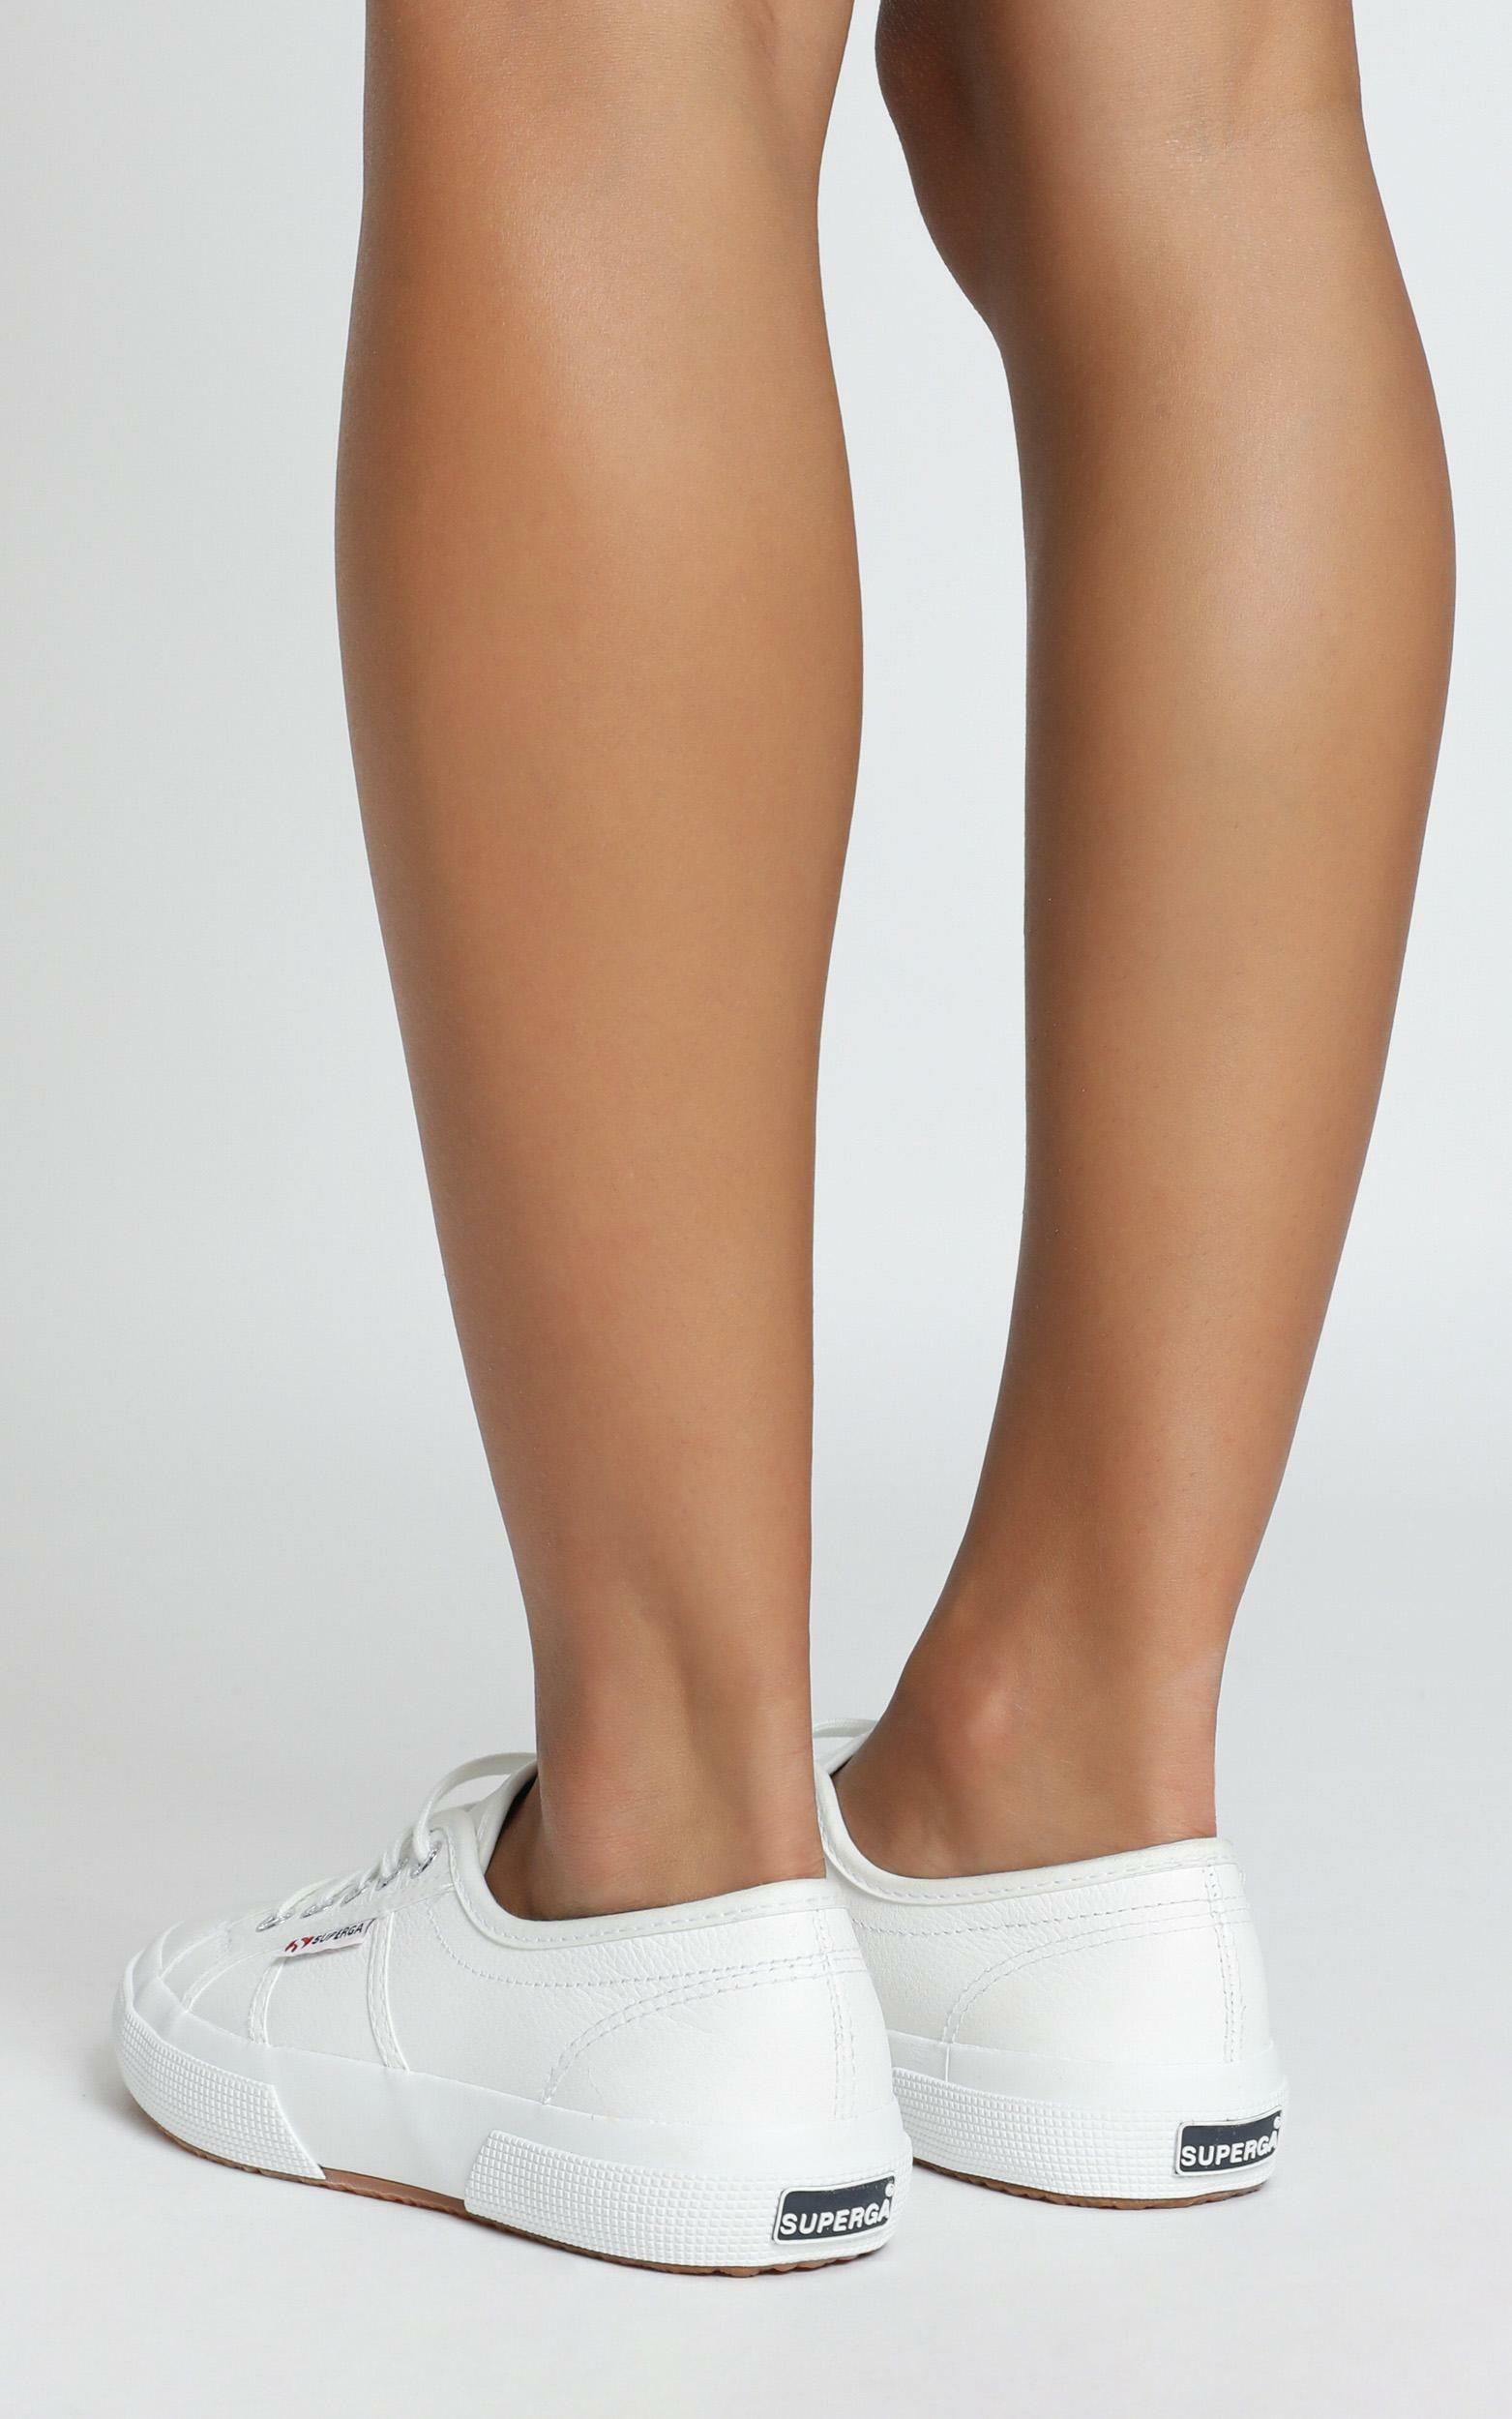 Superga - 2750 EFGLU Sneaker in white leather - 5, White, hi-res image number null